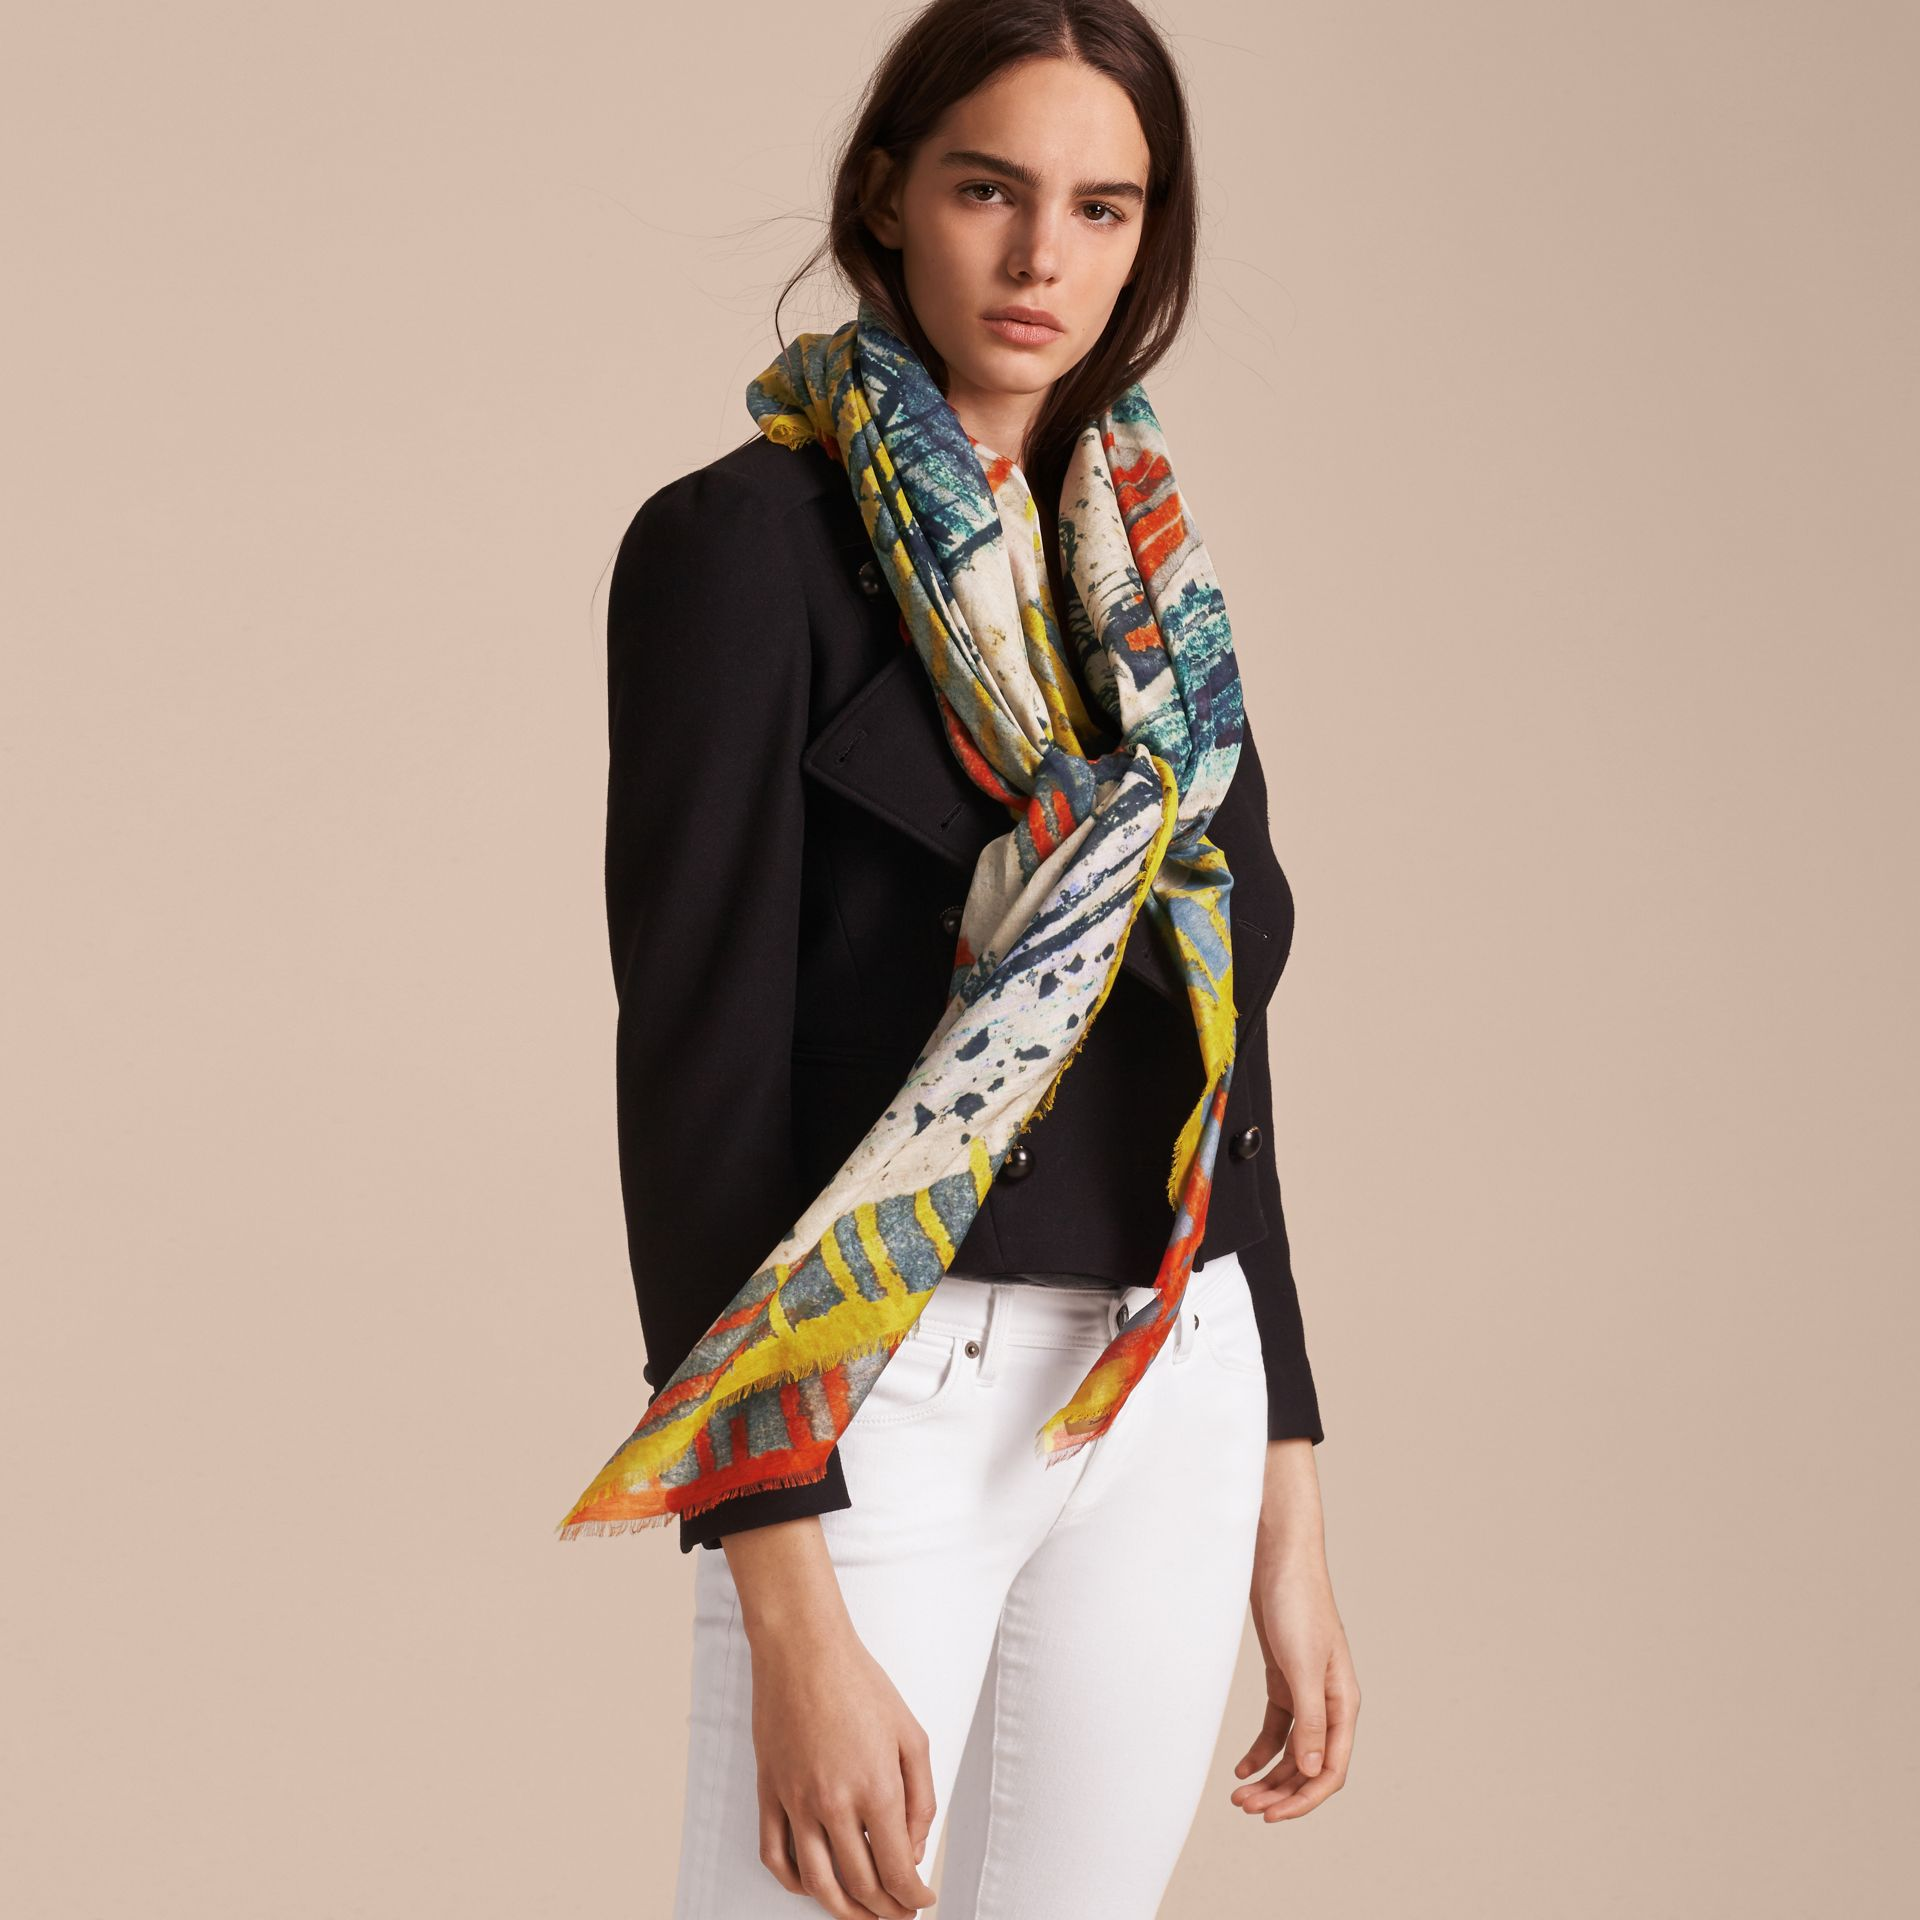 Reclining Figures Print Cotton Square – Large in Stone Blue - Women | Burberry Australia - gallery image 3